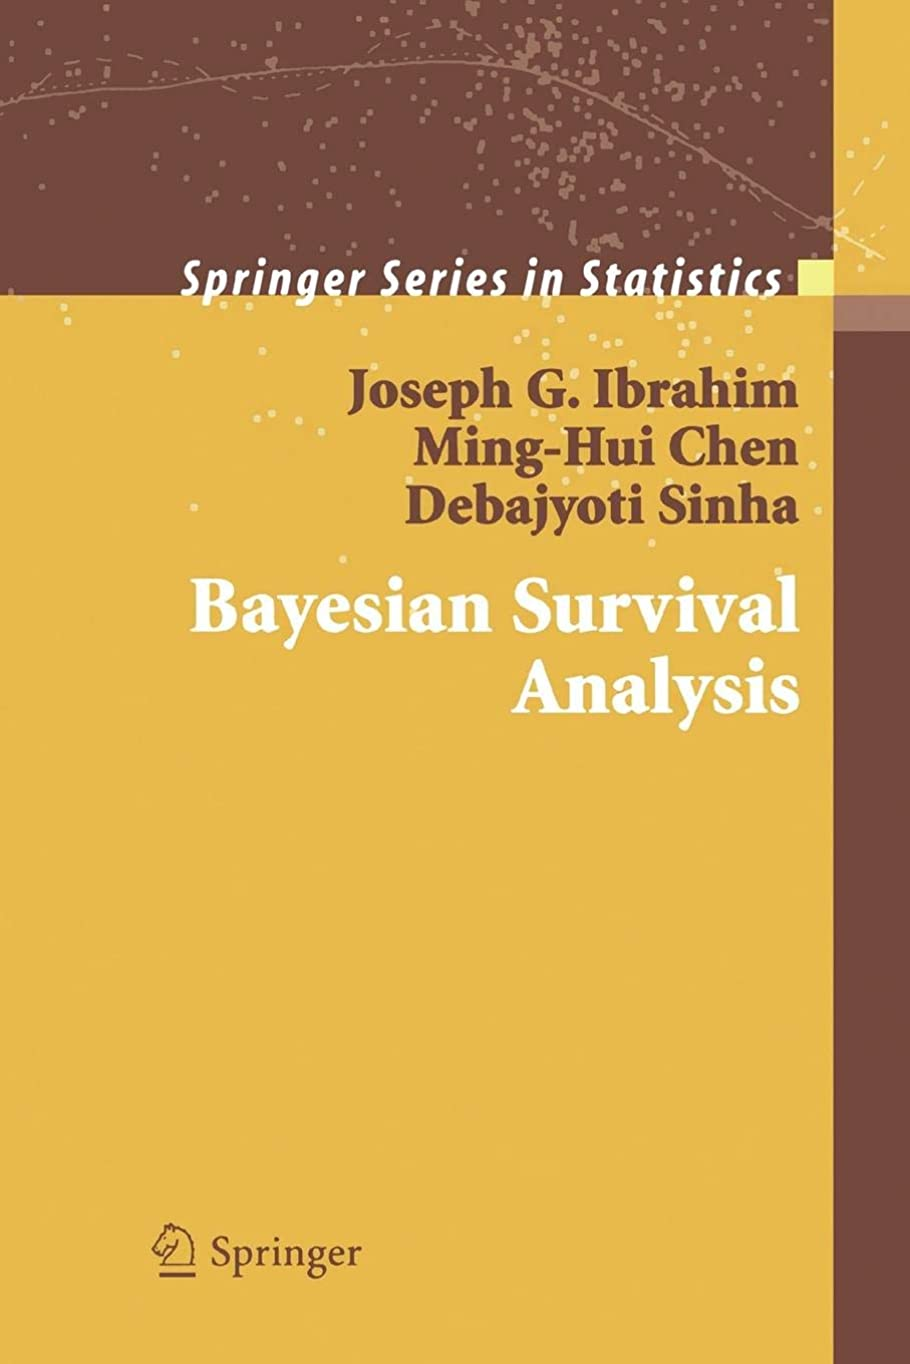 舗装するシリンダー強度Bayesian Survival Analysis (Springer Series in Statistics)